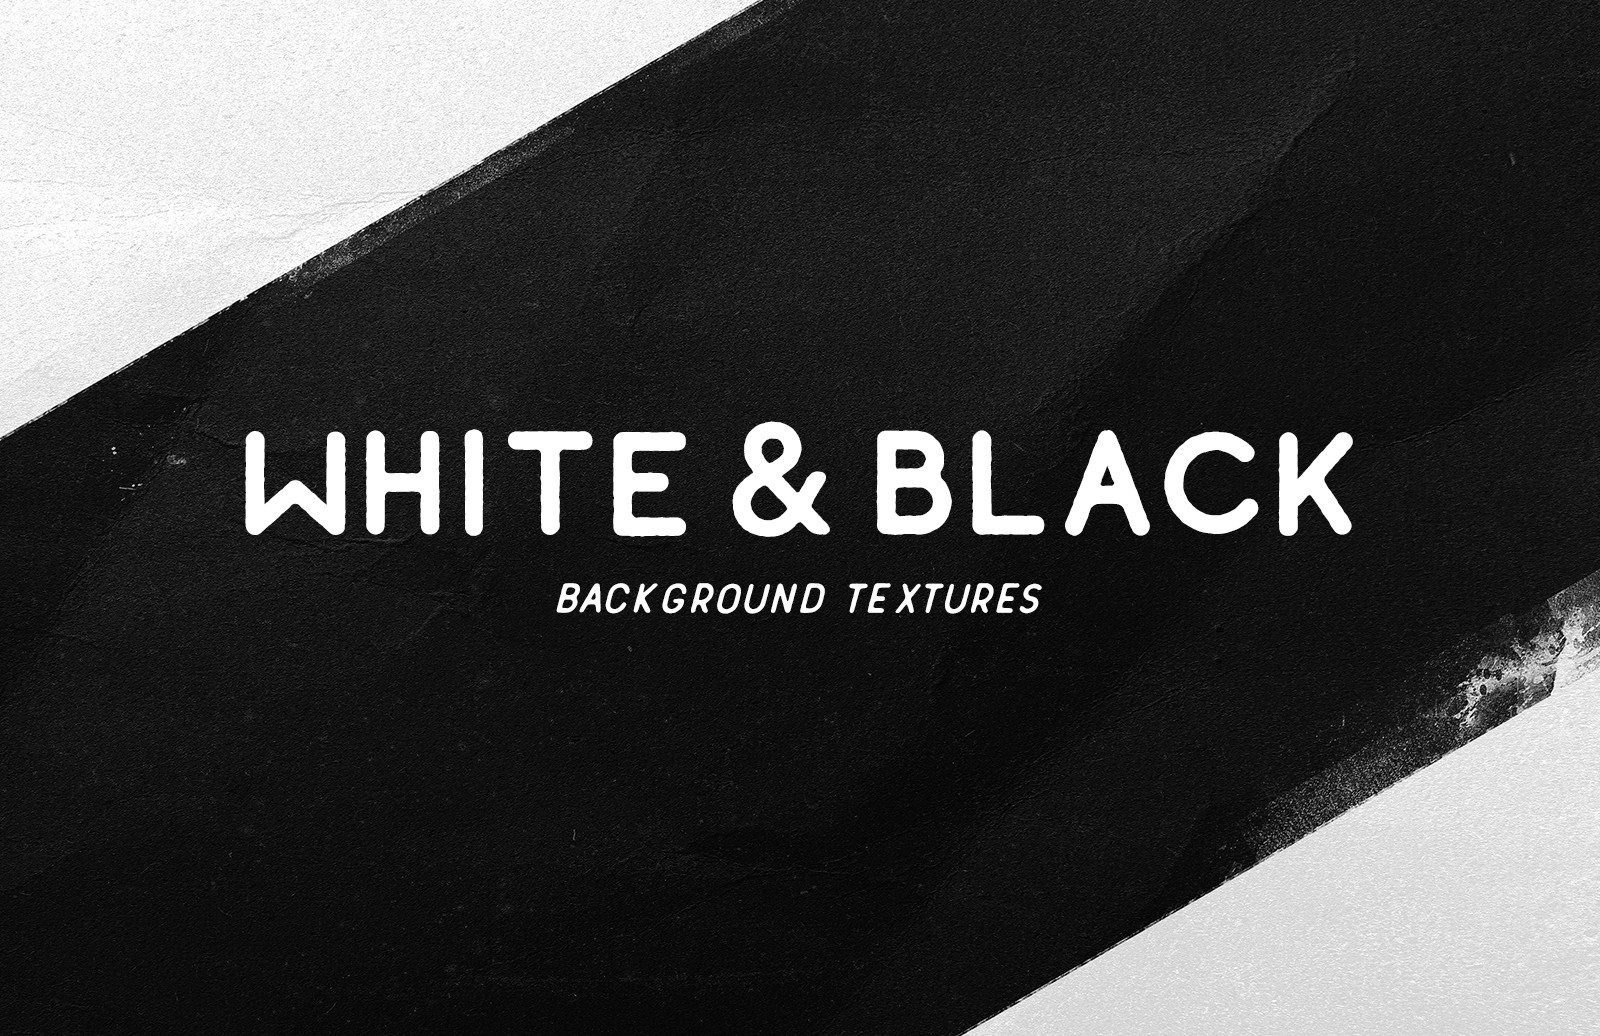 White & Black Background Textures